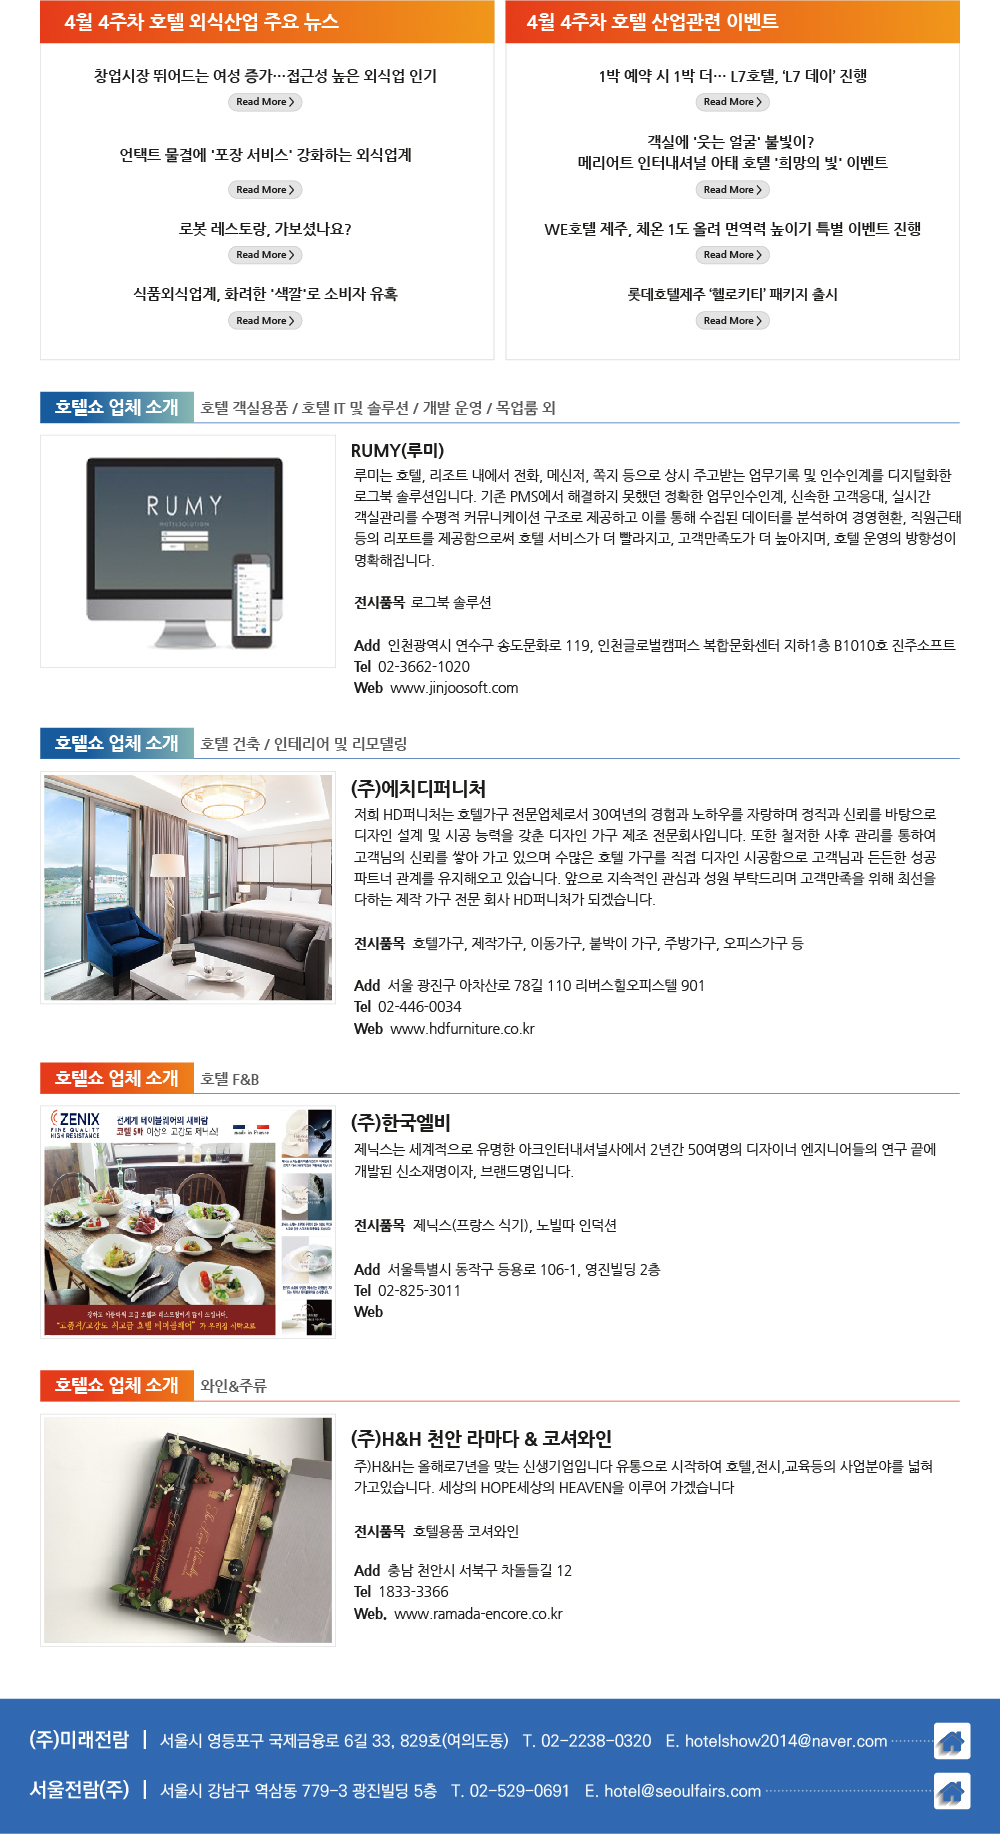 http://www.hotelshow.co.kr/img_up/shop_pds/hotelshow/design/newsletter/4-42.jpg